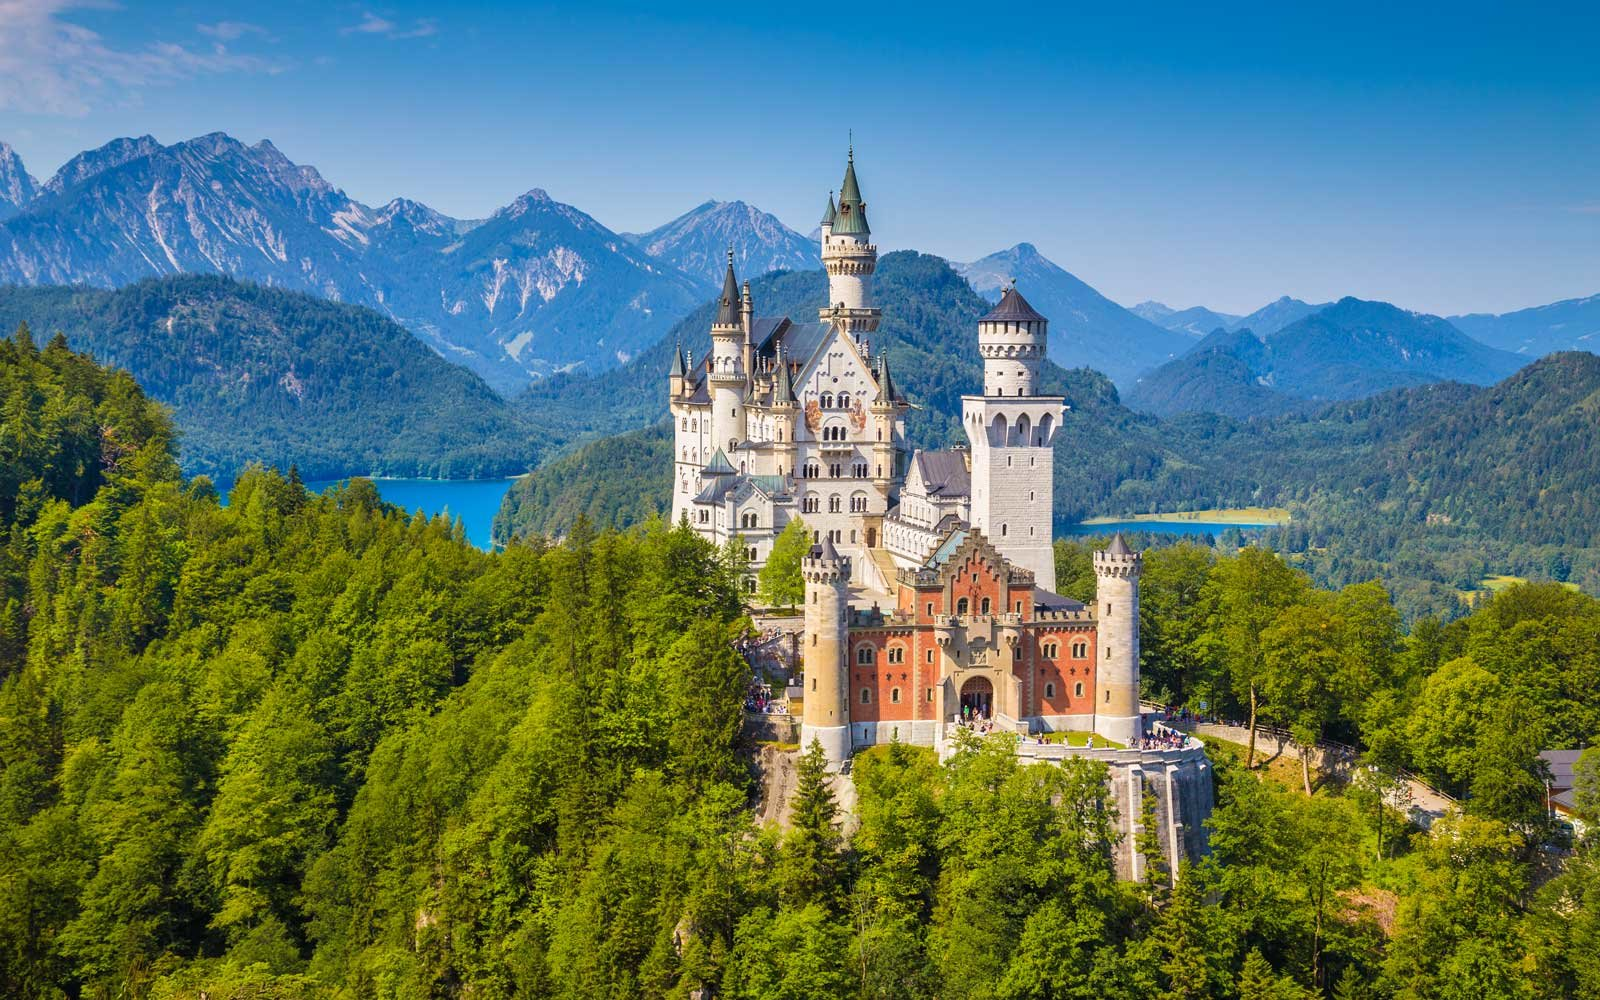 Connu 25 Facts About Neuschwanstein Castle in Germany | Travel + Leisure EM53